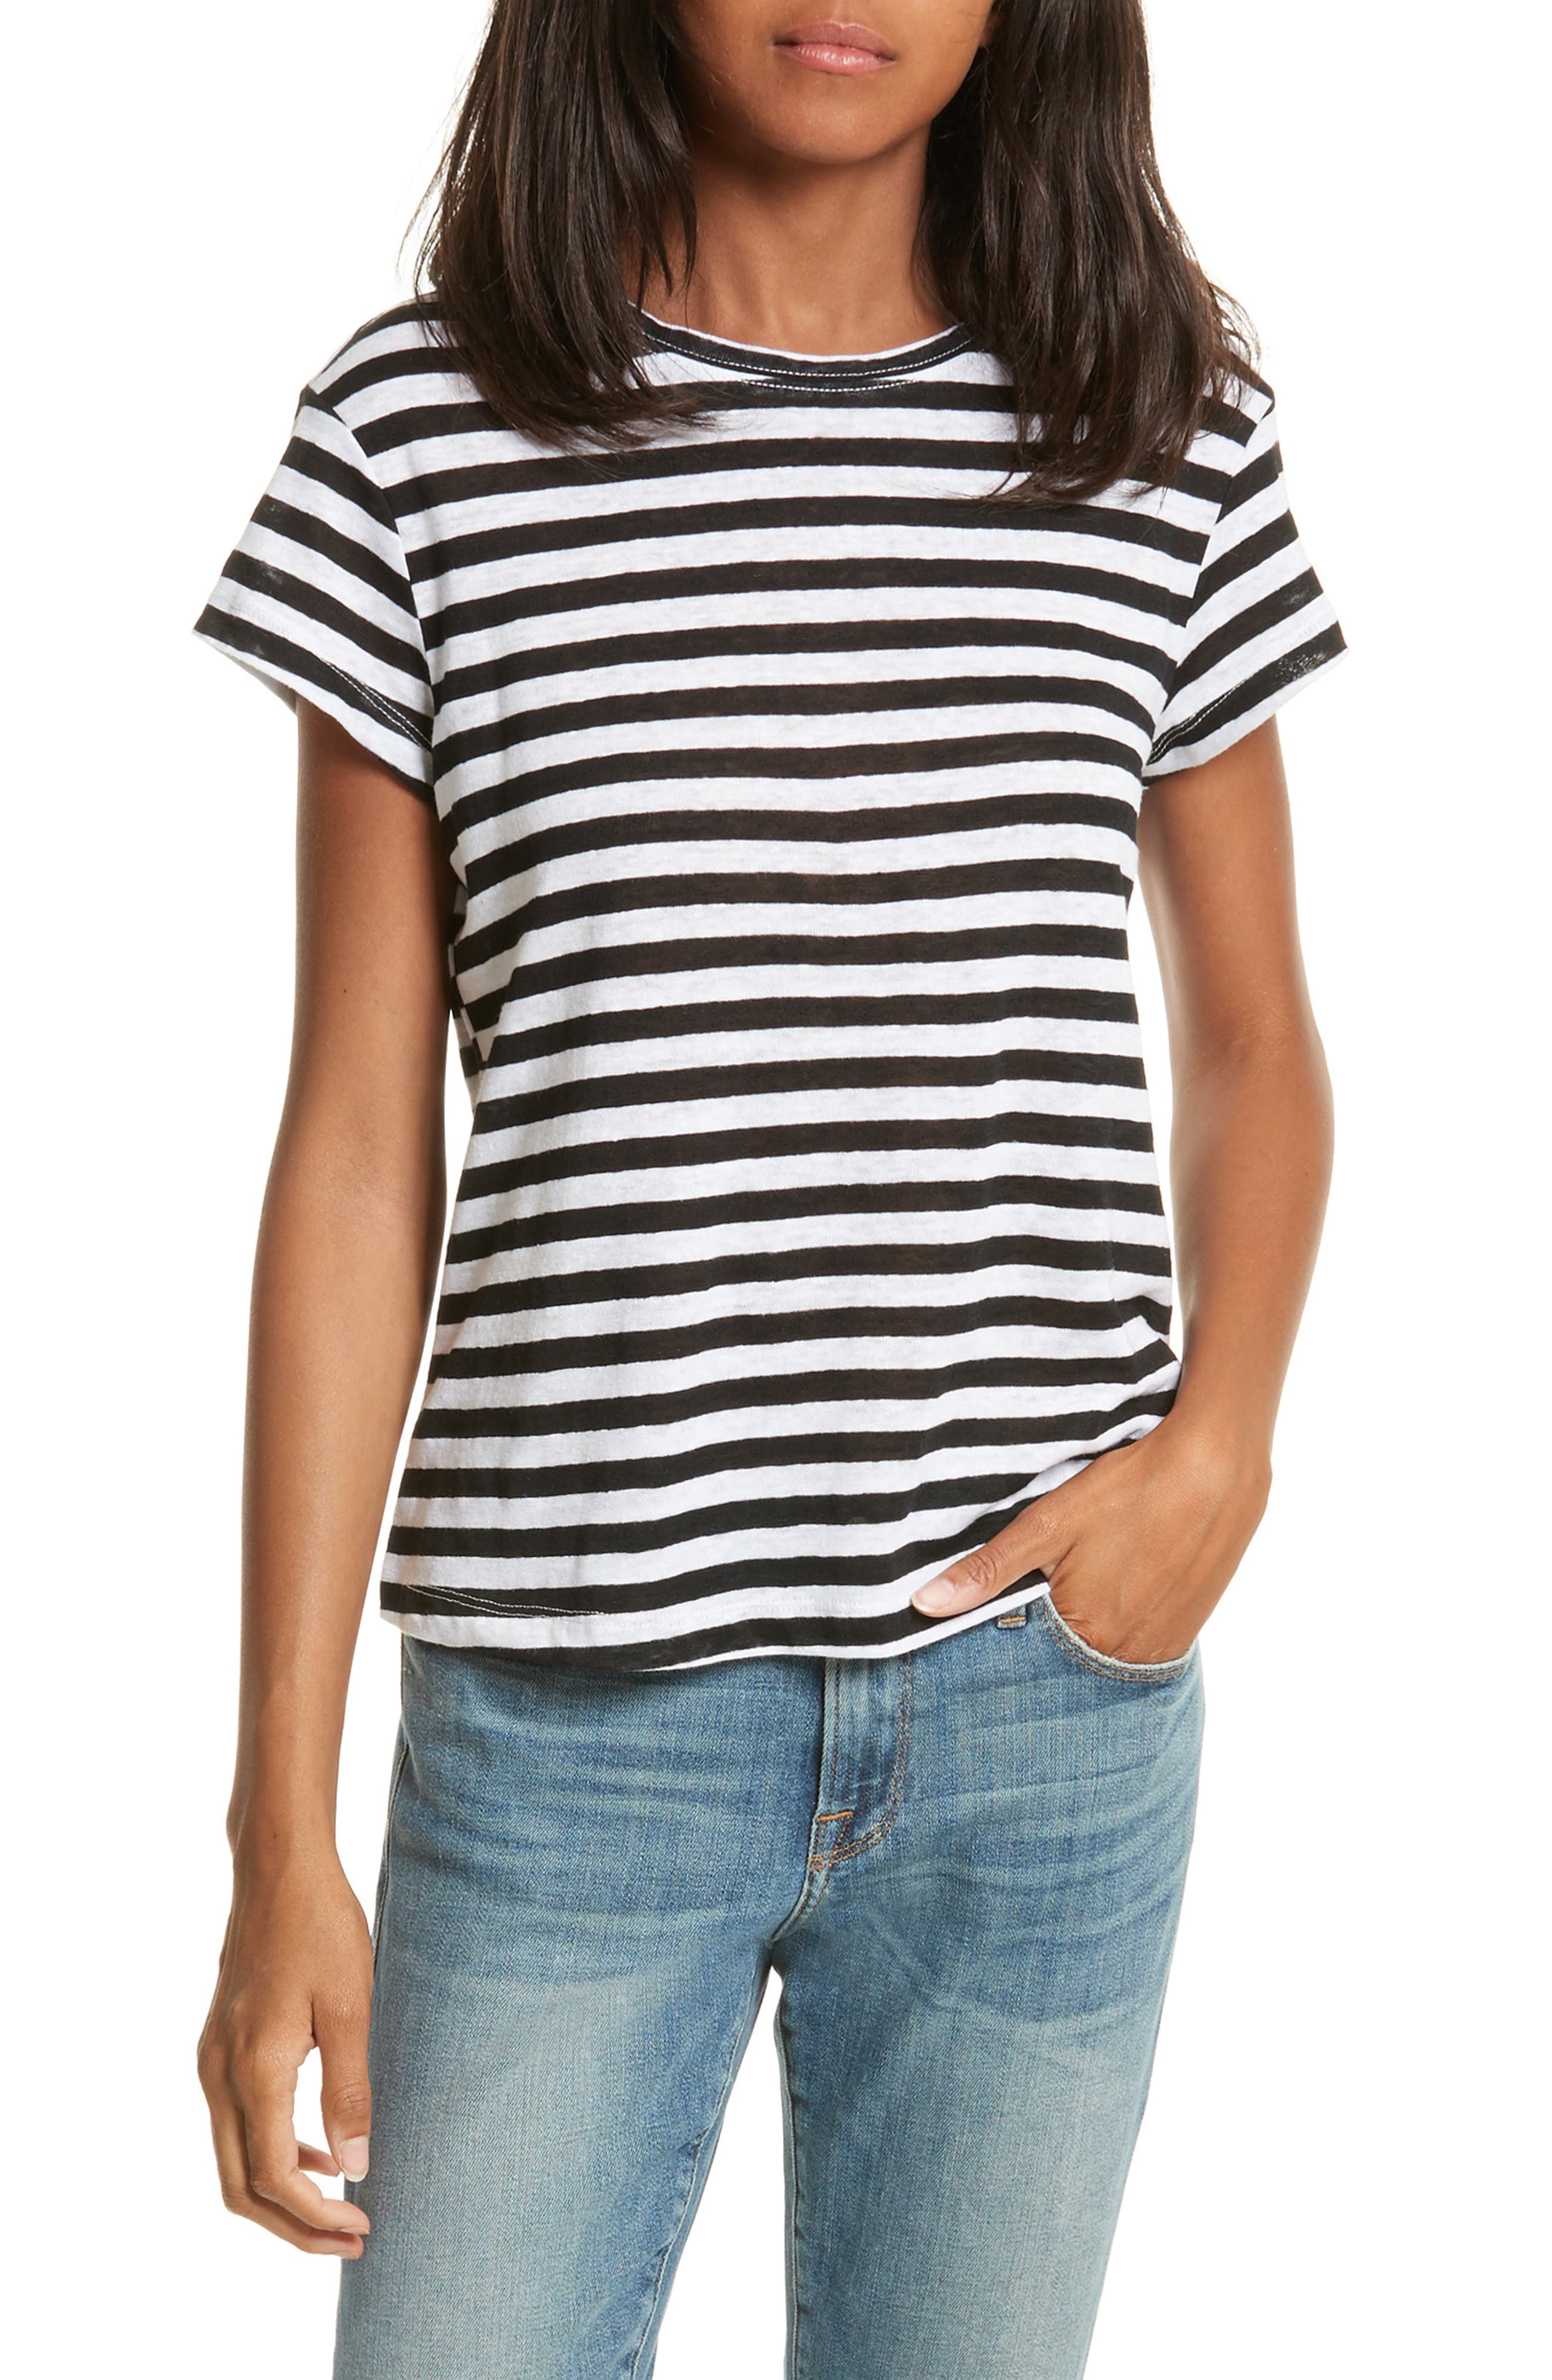 Alternate Image 1 Selected - FRAME Stripe Crew Tee (Nordstrom Exclusive)